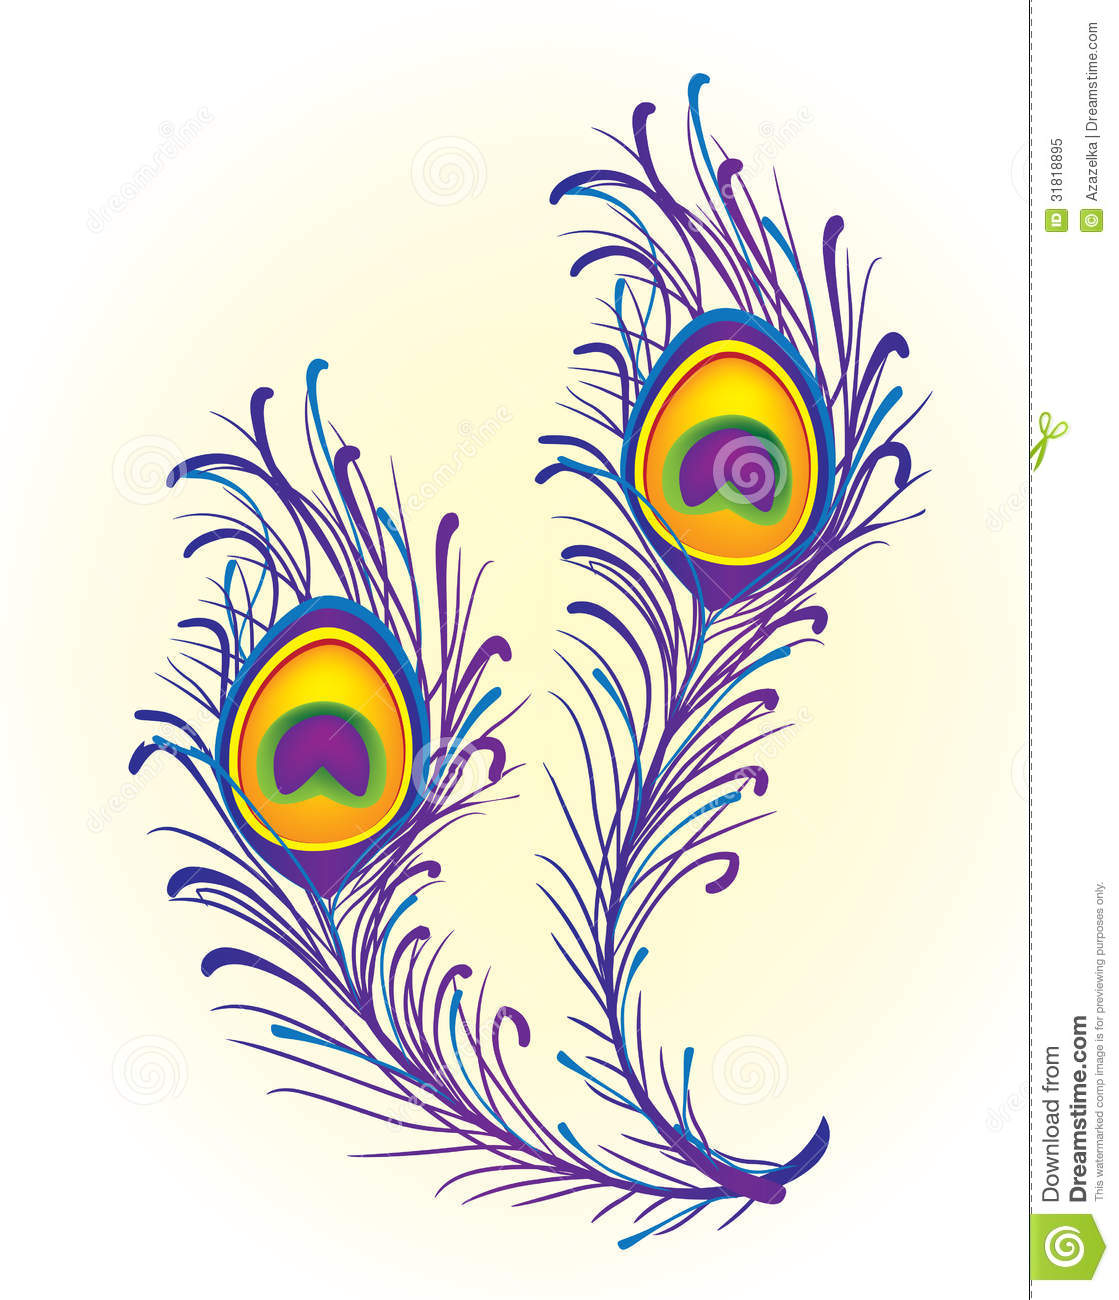 Peacock Feather Royalty Free Stock Photo - Image: 31818895 Peacock Pattern Outline